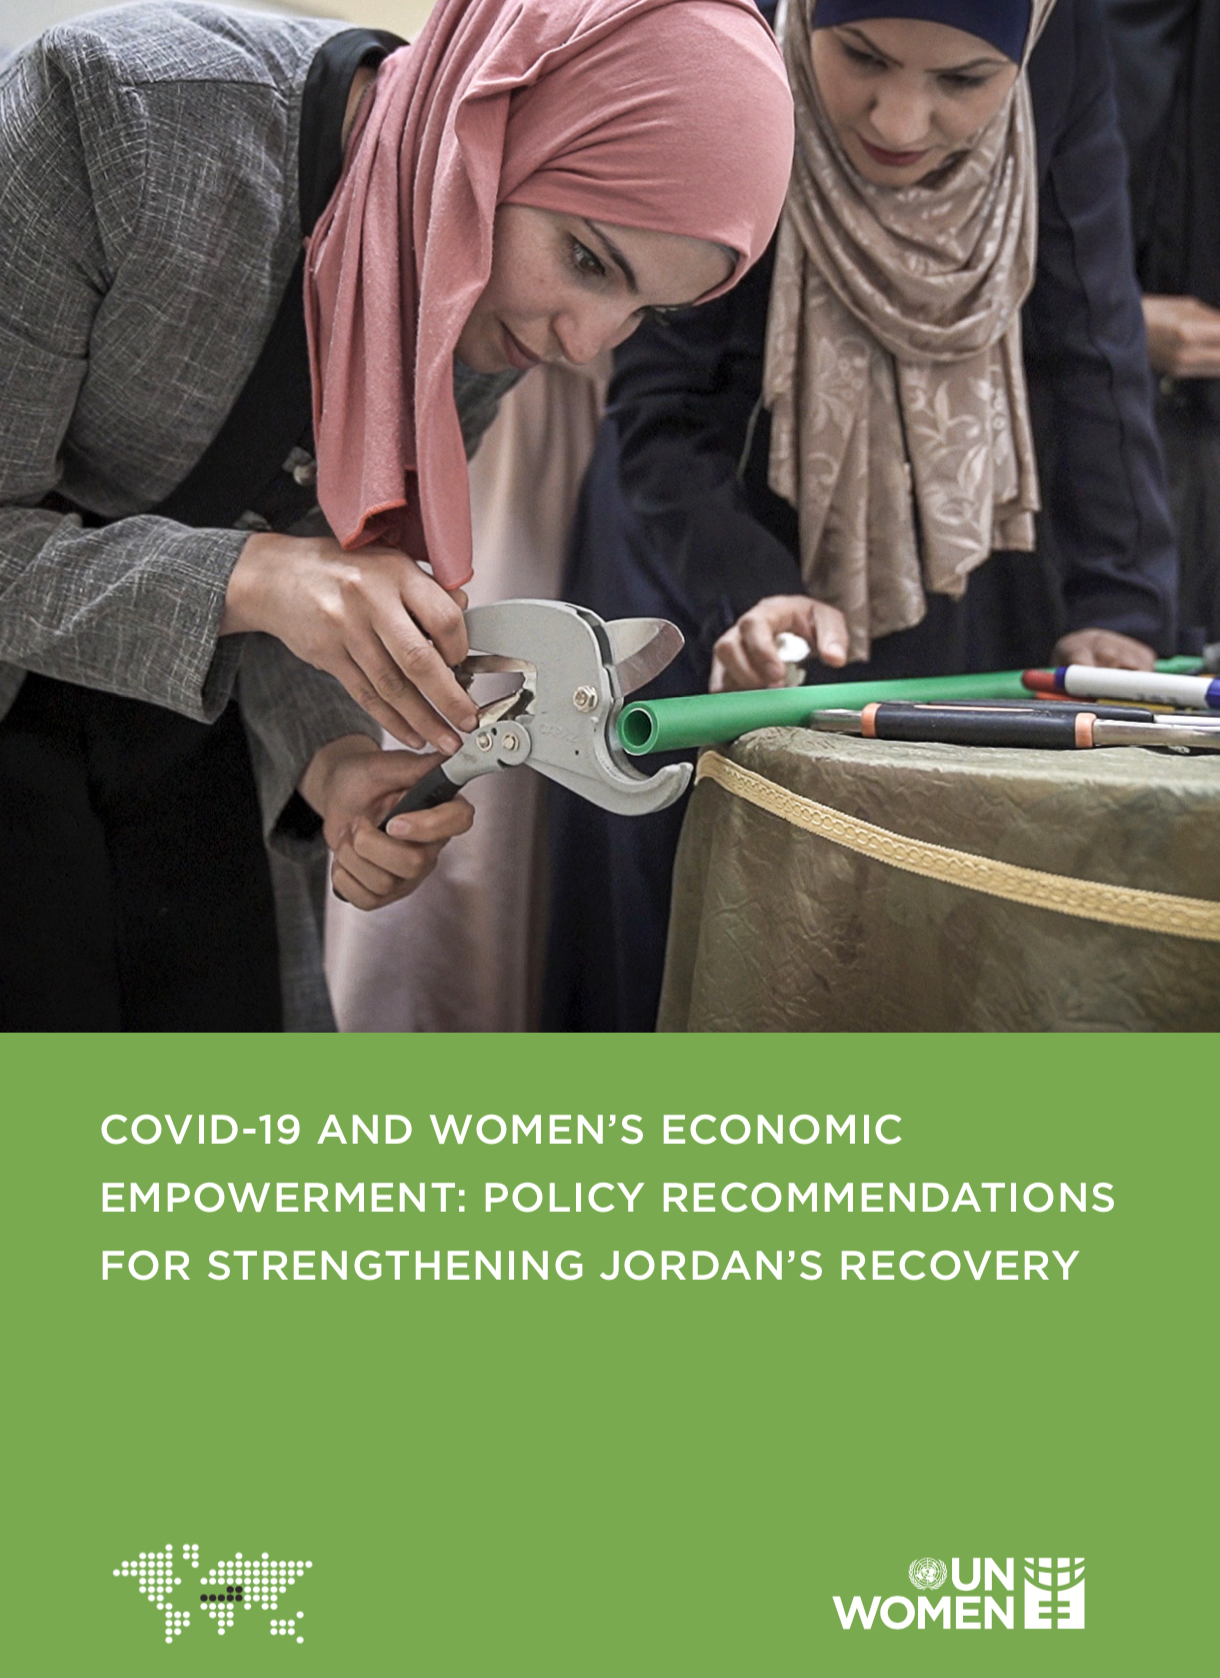 Covid-19 and Women's Economic Empowerment: Policy Recommendations for Strengthening Jordan's Recovery